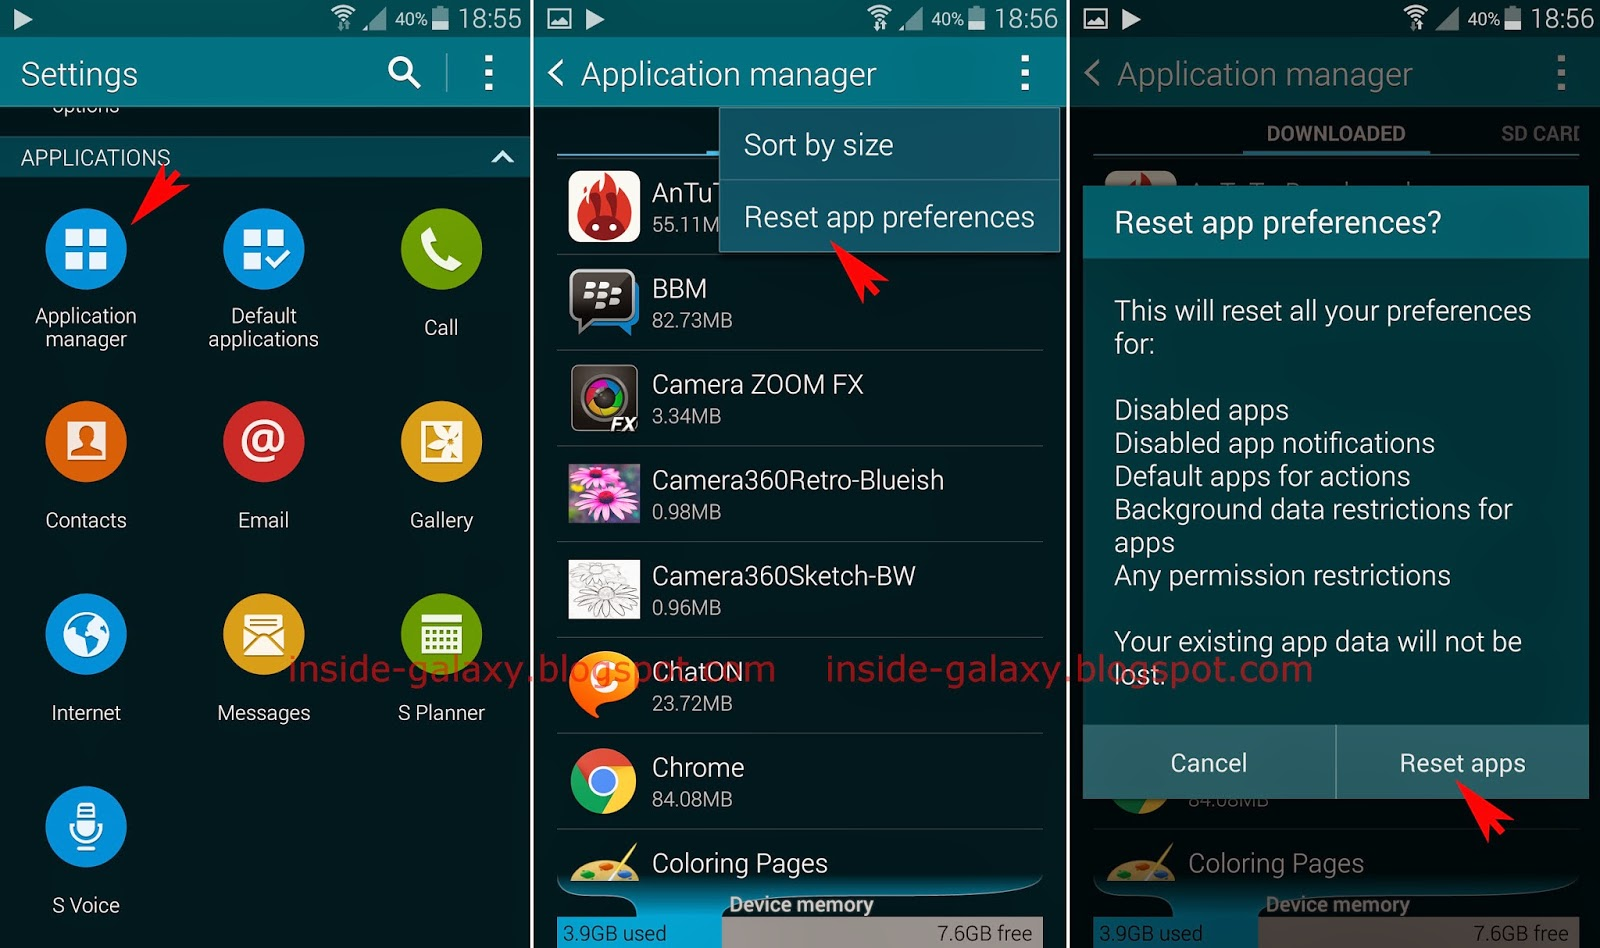 Samsung galaxy s5 how to reset app preferences in android 442 kitkat inside galaxy publicscrutiny Choice Image